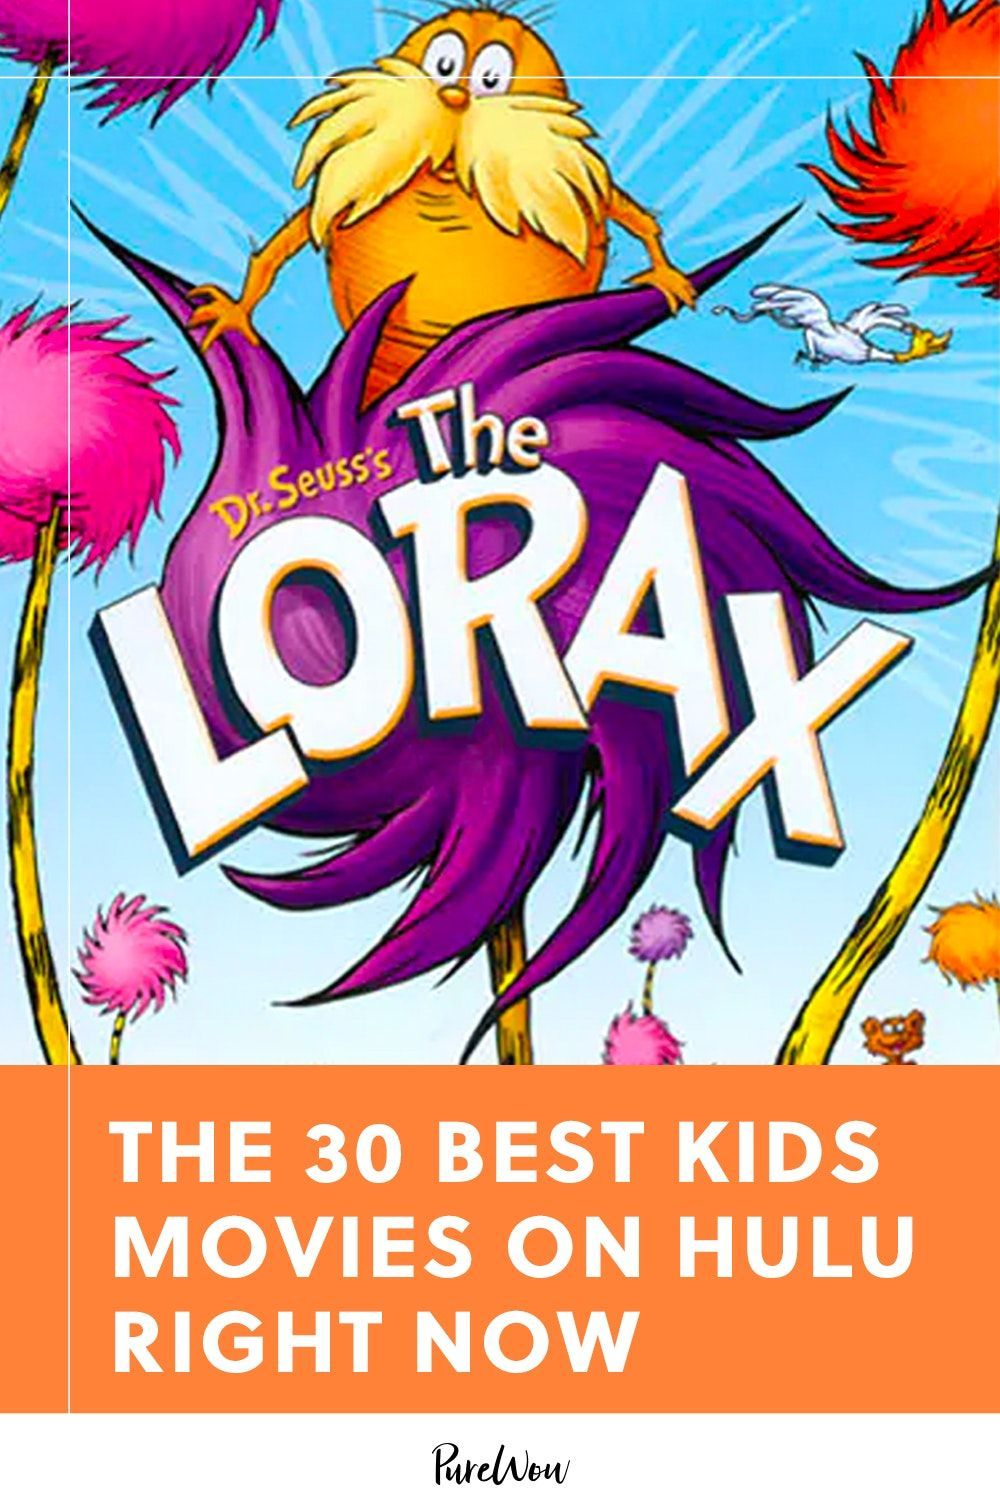 The 30 Best Kids Movies On Hulu Right Now Best Kid Movies Kids Movies Movie Covers